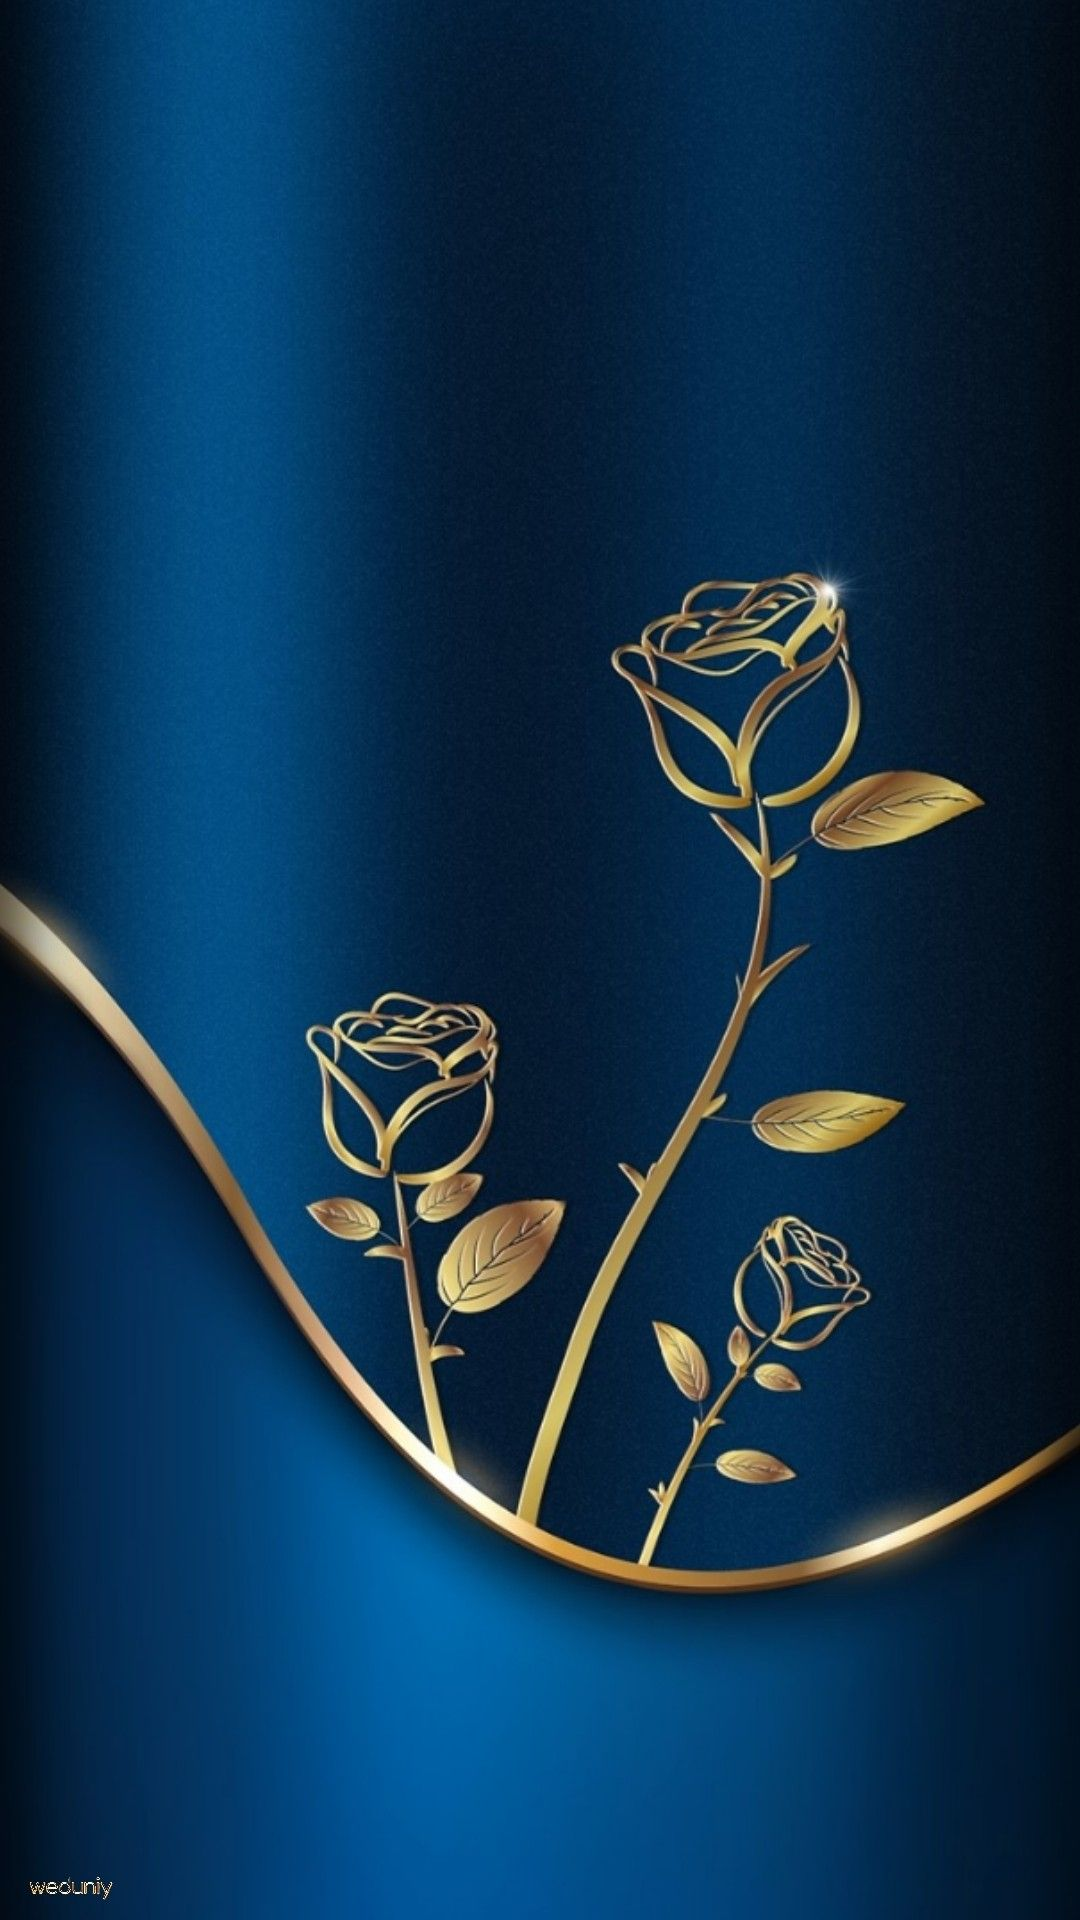 Wallpaper Blue Gold Roses Gold Wallpaper Phone Gold Wallpaper Iphone Cool Backgrounds